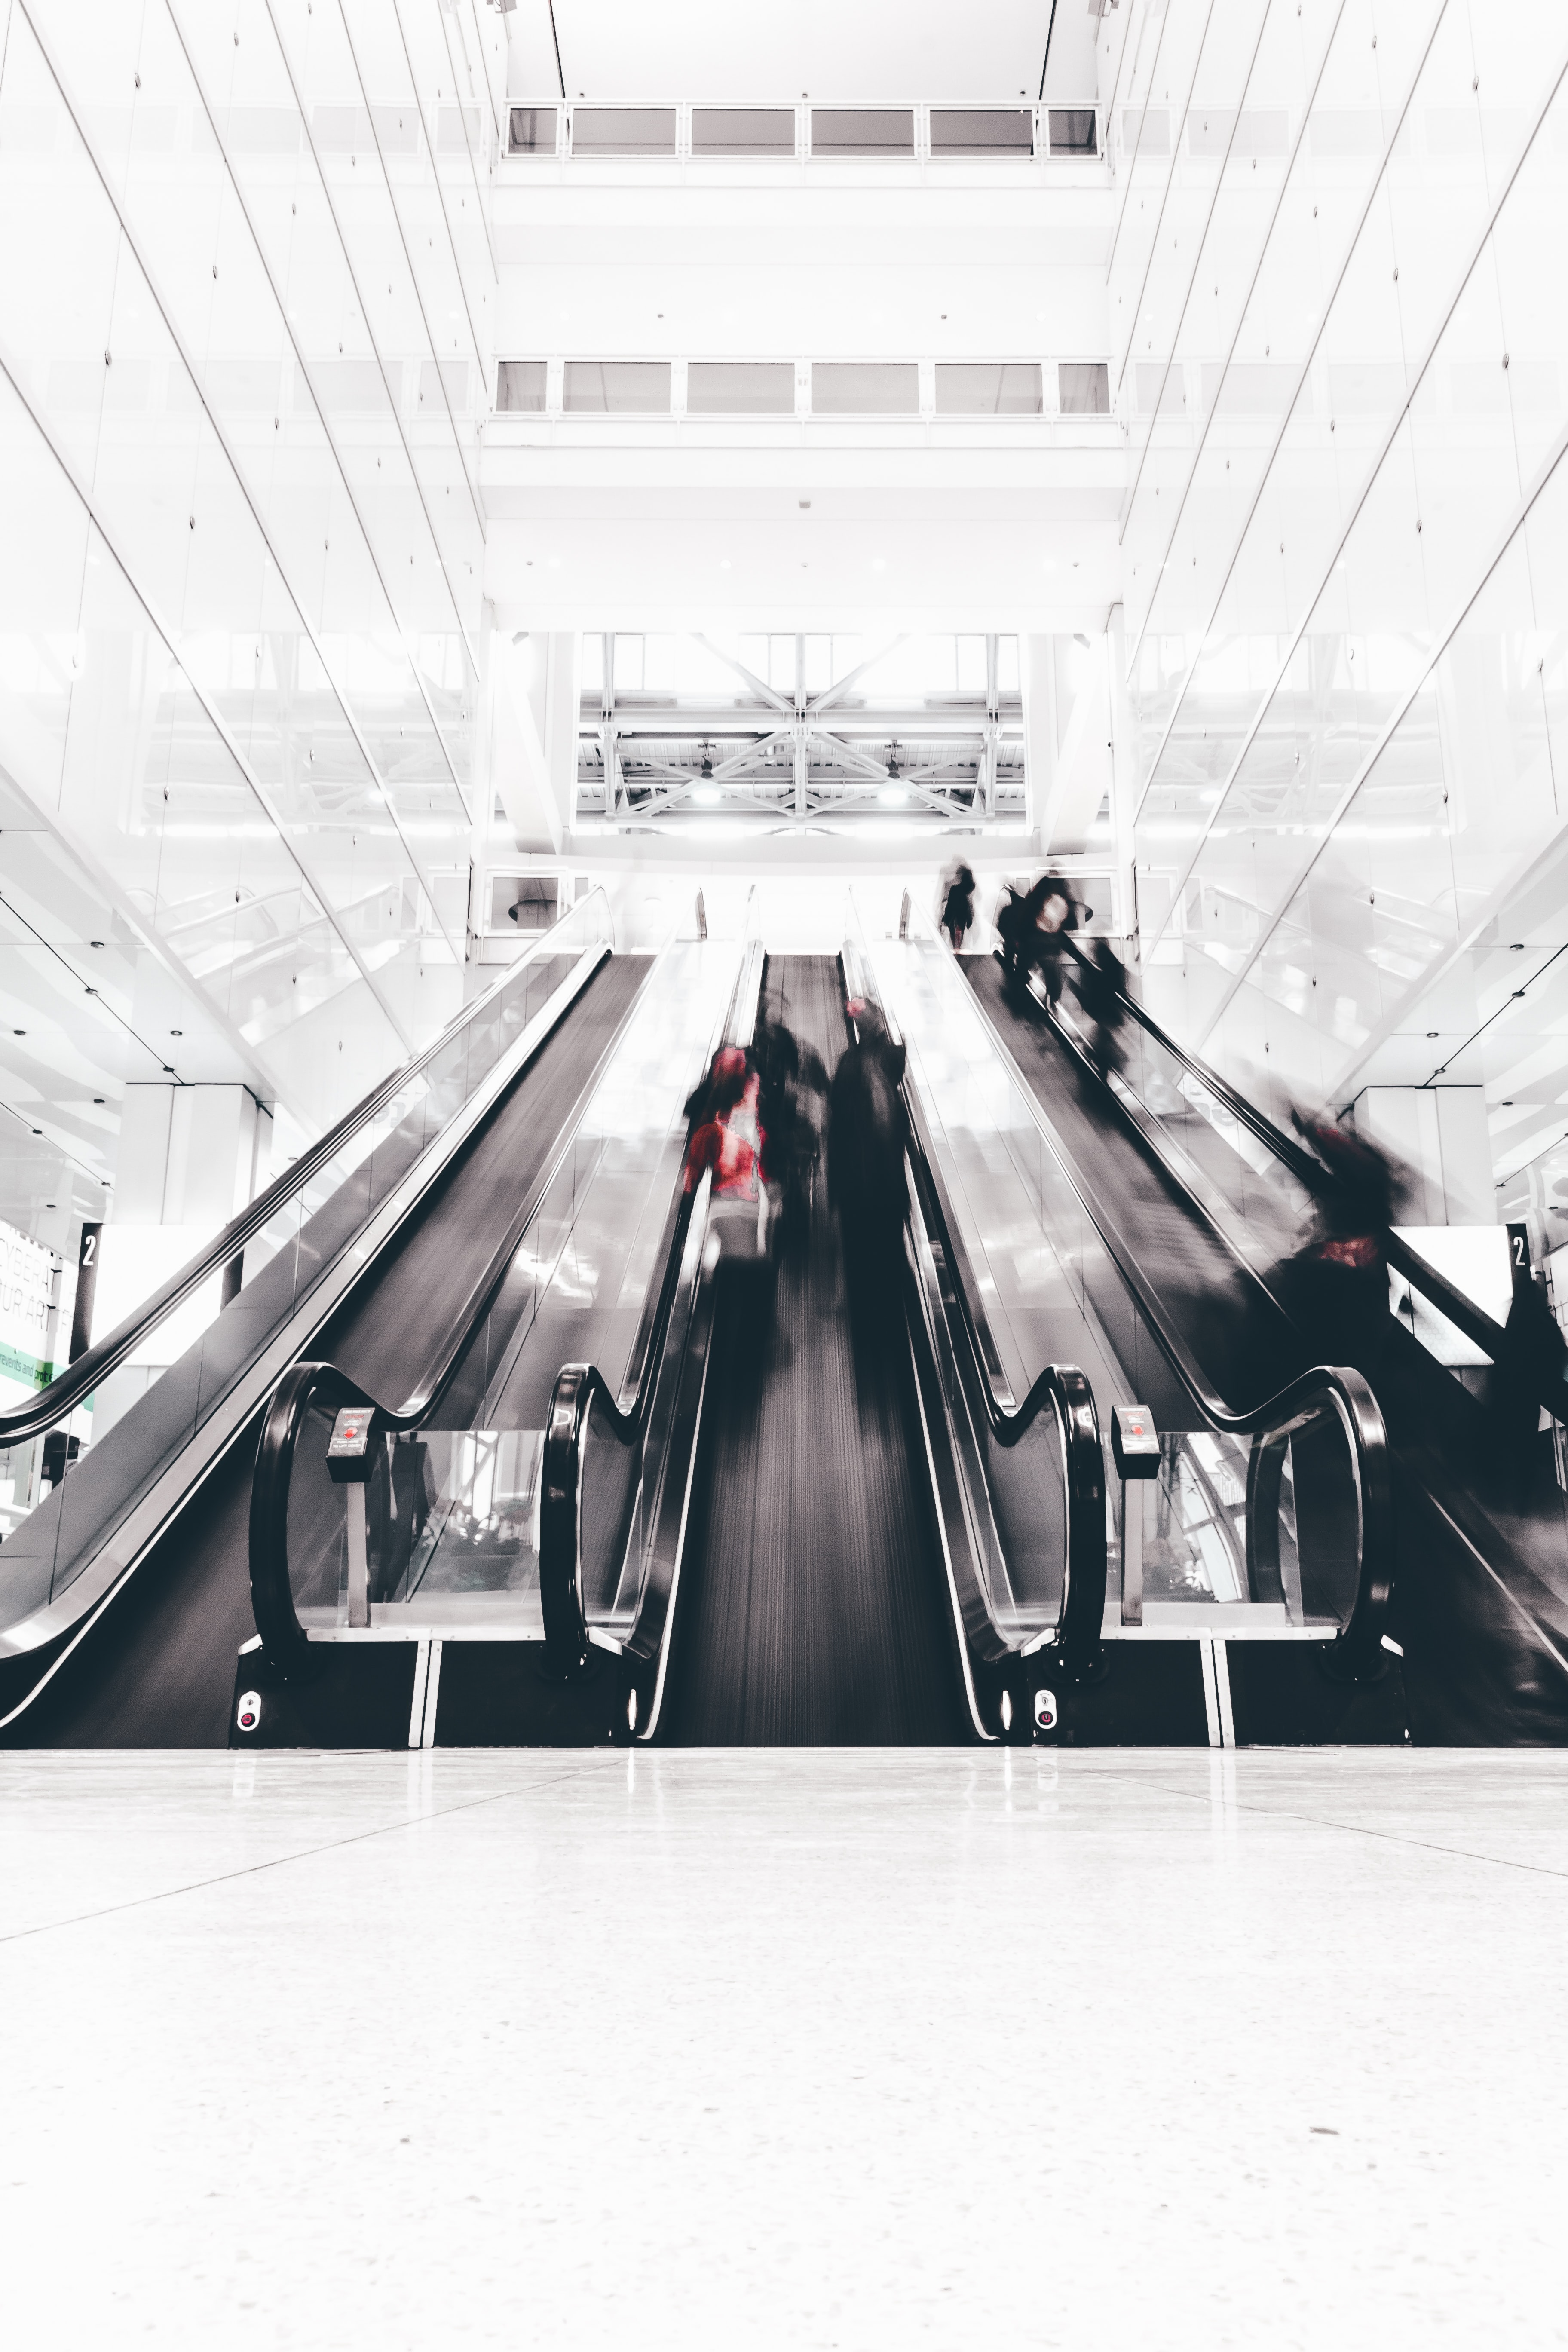 A time exposure shot capturing people using an escalator in a Chicago building